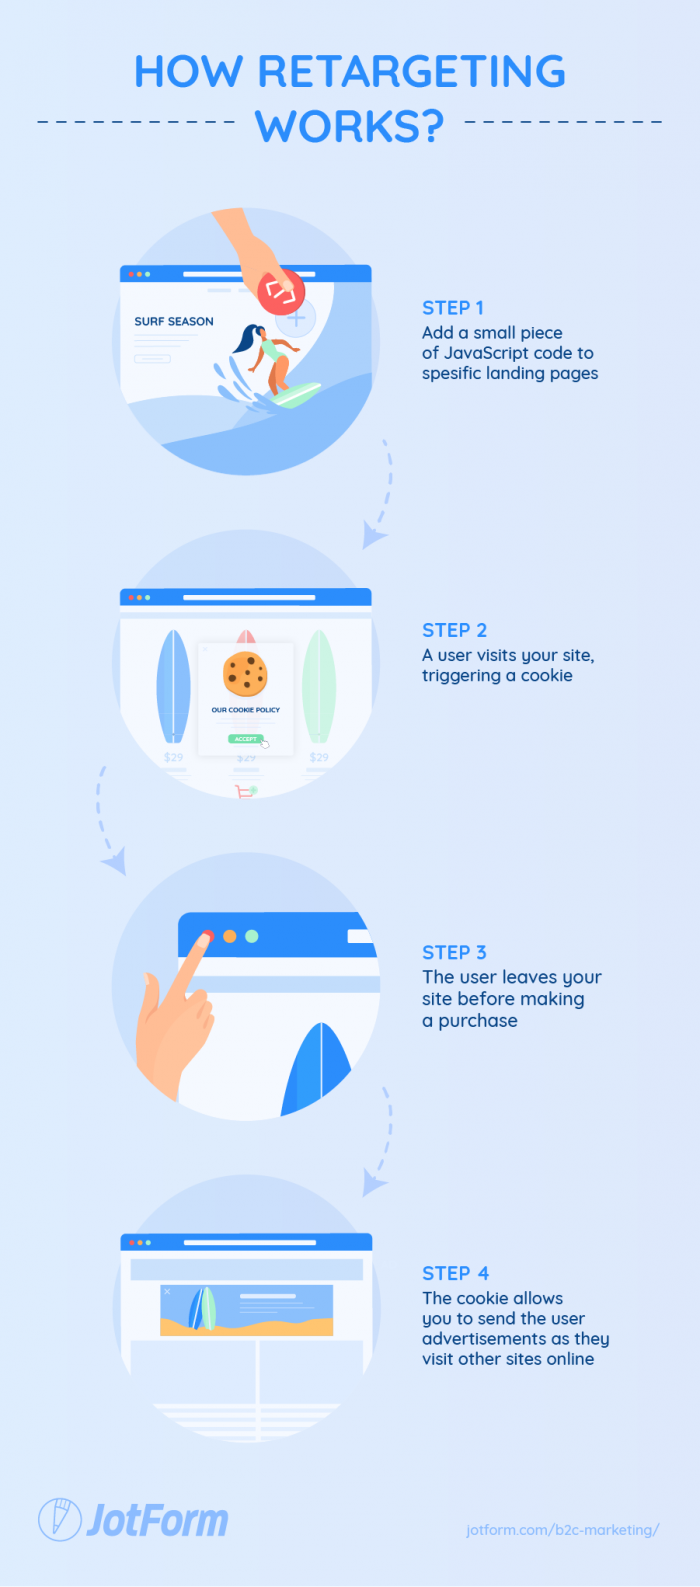 Process of how retargeting works